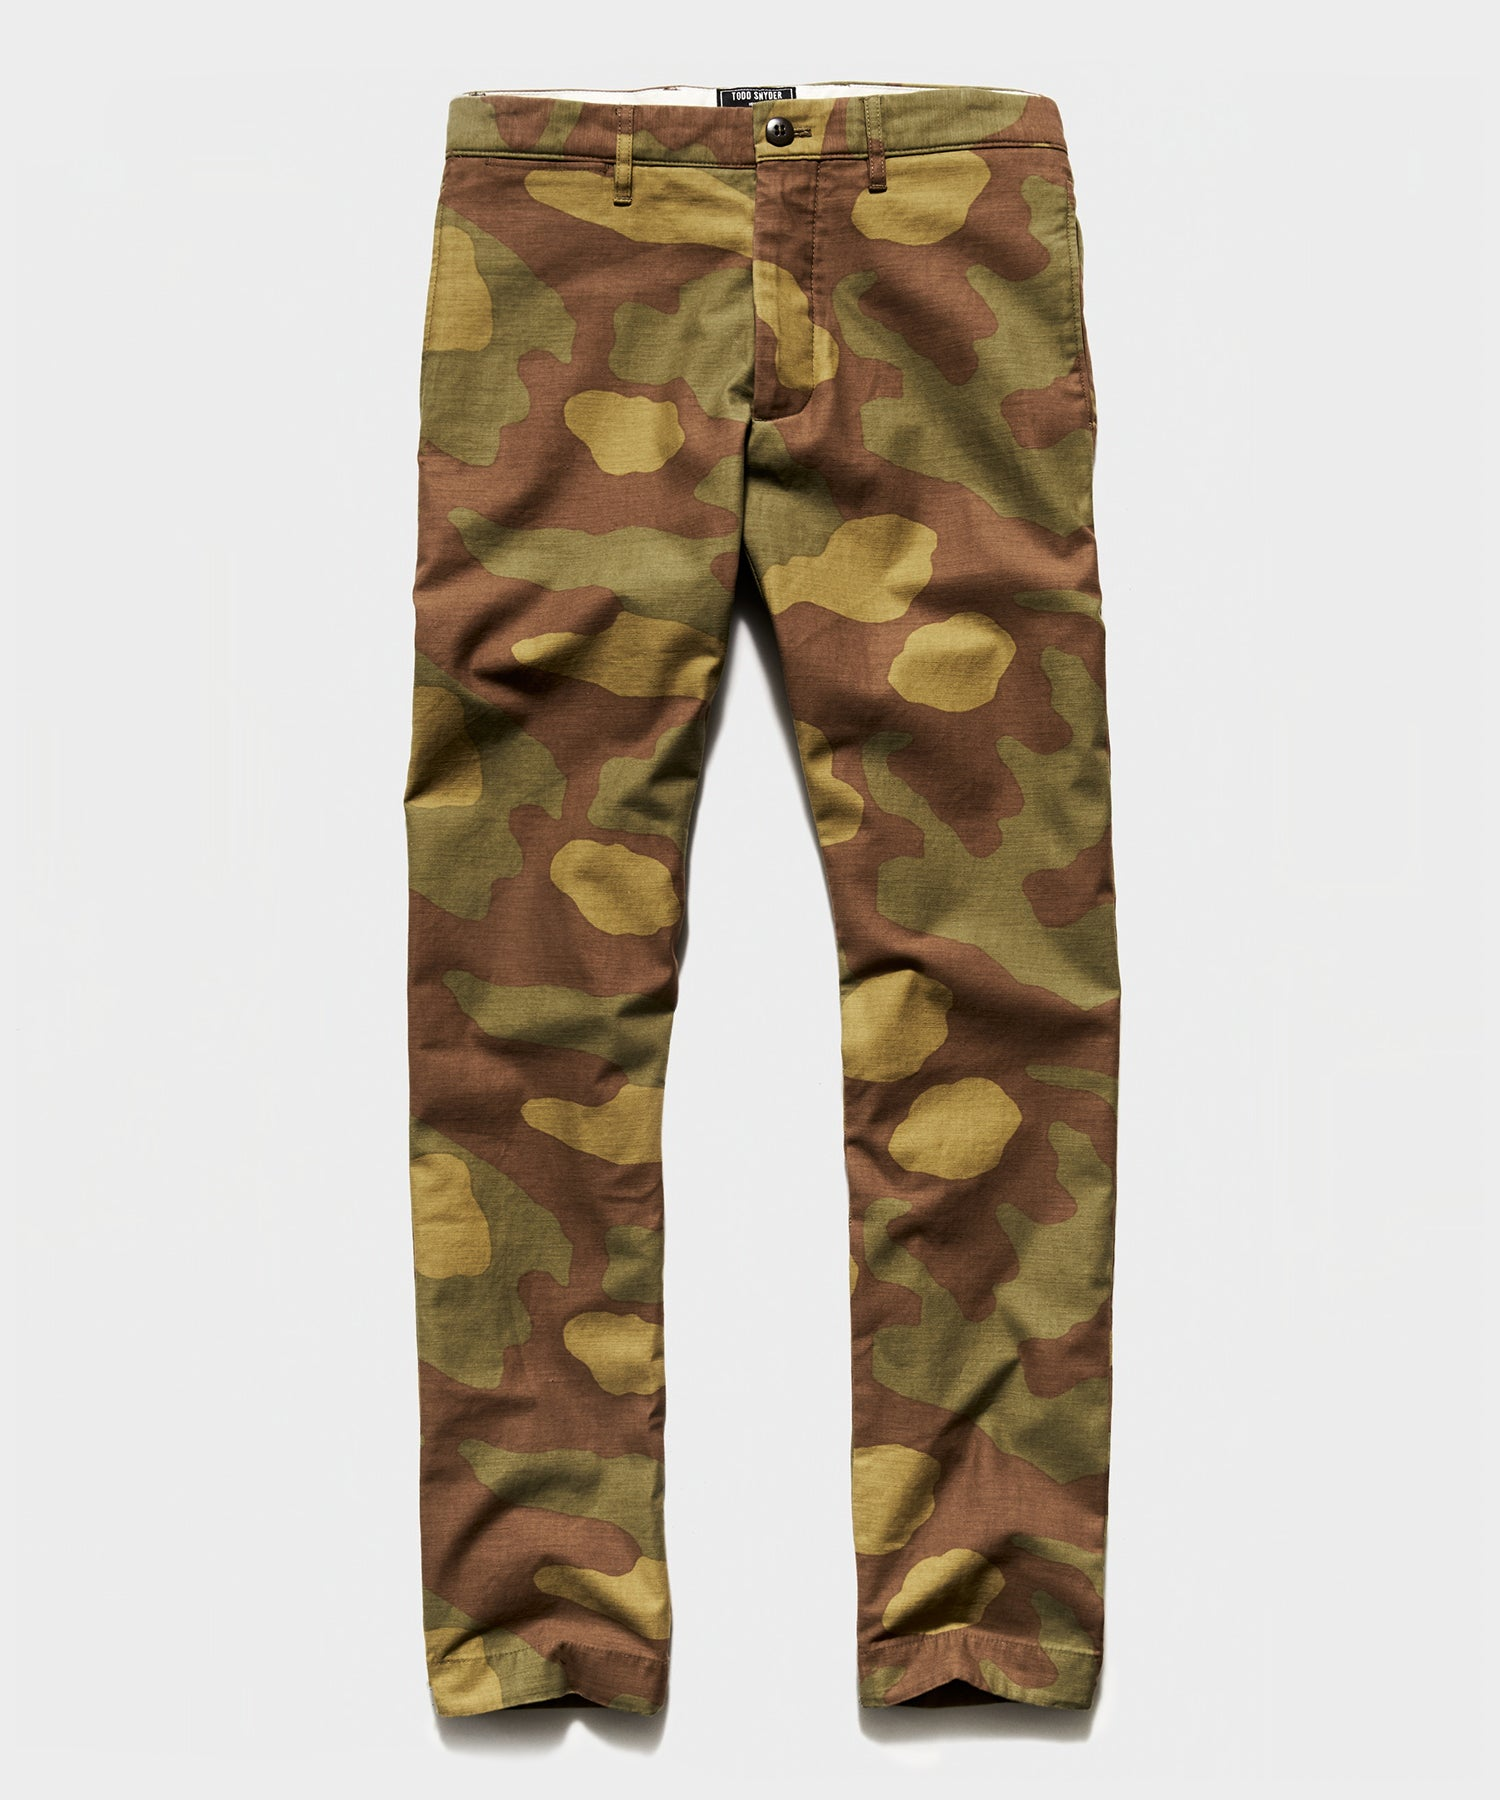 The Japanese Camouflage Chino